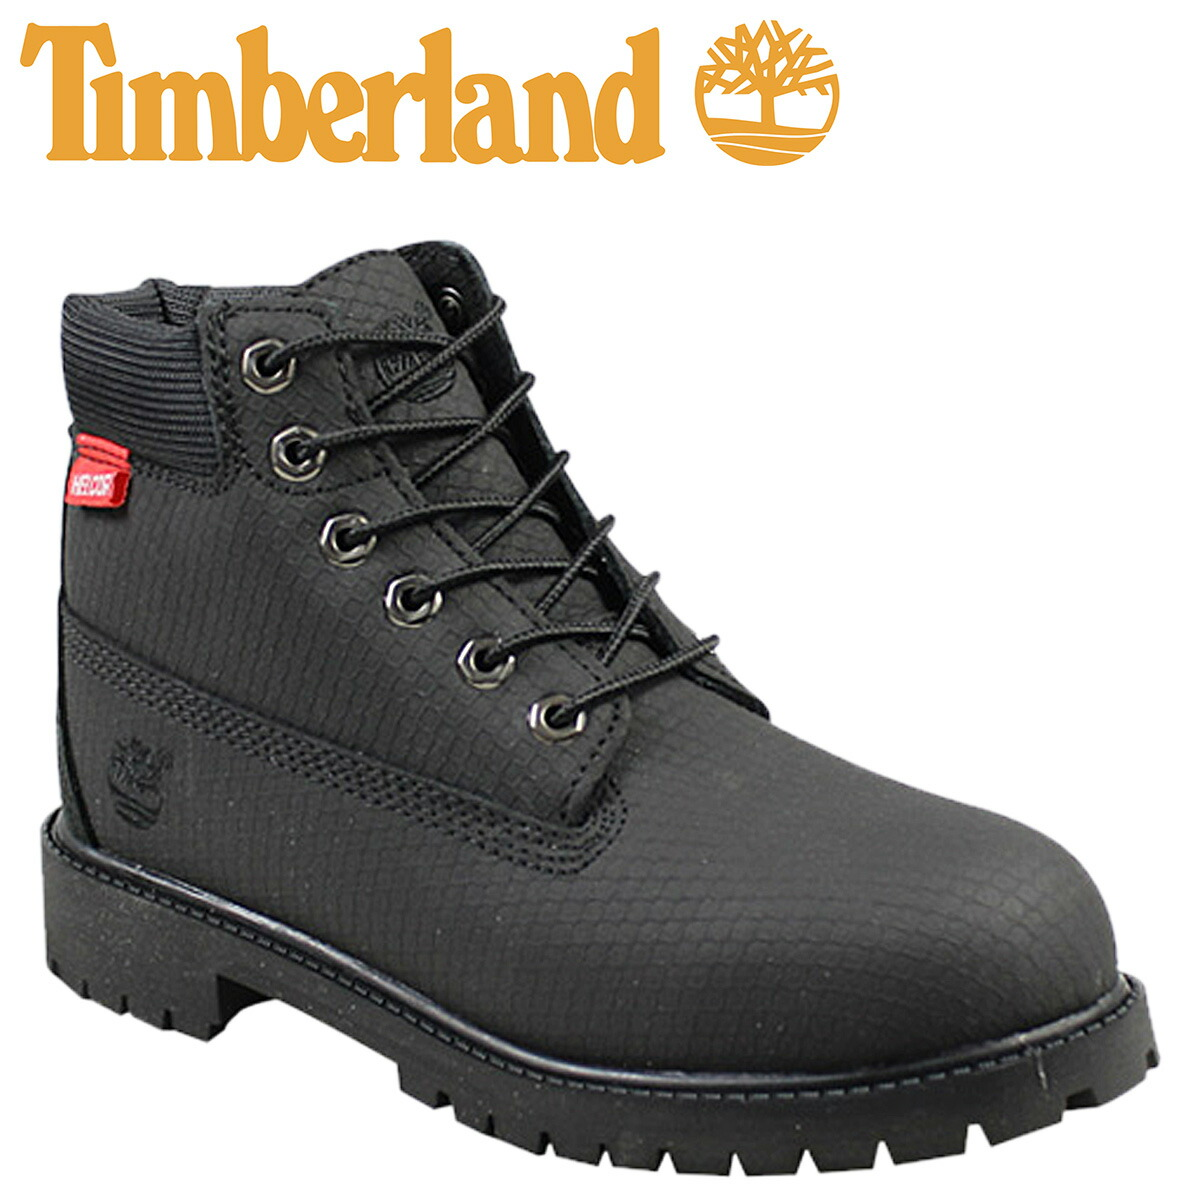 6 inches of Timberland Timberland kids premium waterproof boots 6 INCH PREMIUM WATERPROOF HELCOR LITTLE KIDS BOOTS leather youth child 6577R black